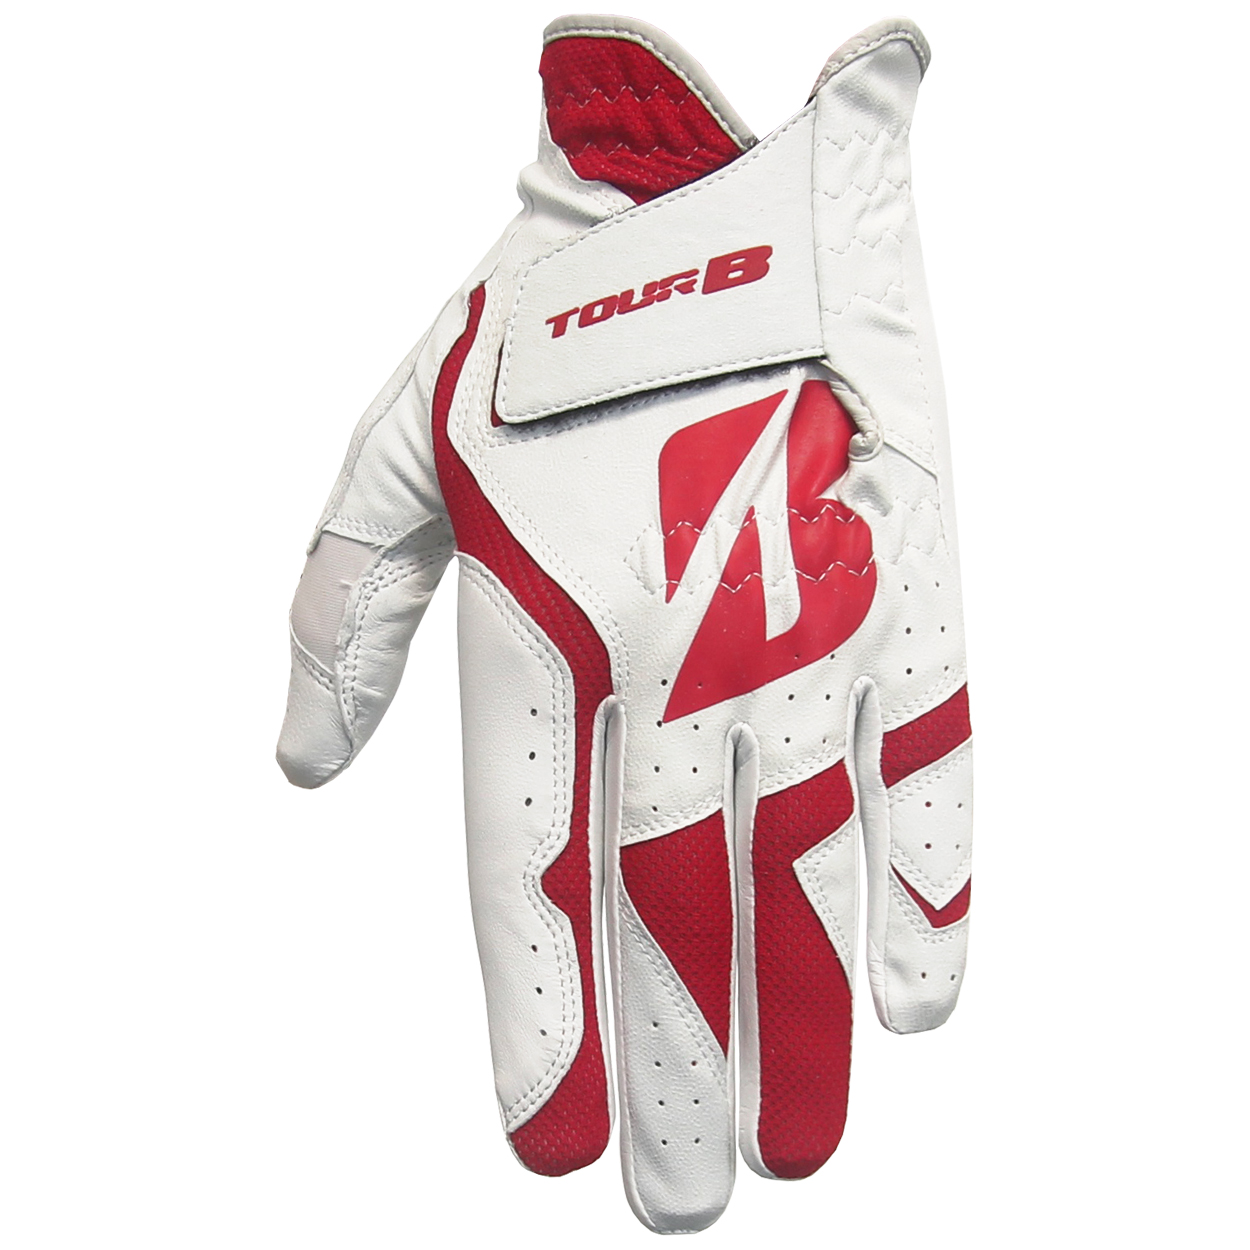 Bridgestone Tour B Fit Golf Gloves, Red/White (3-Pack)